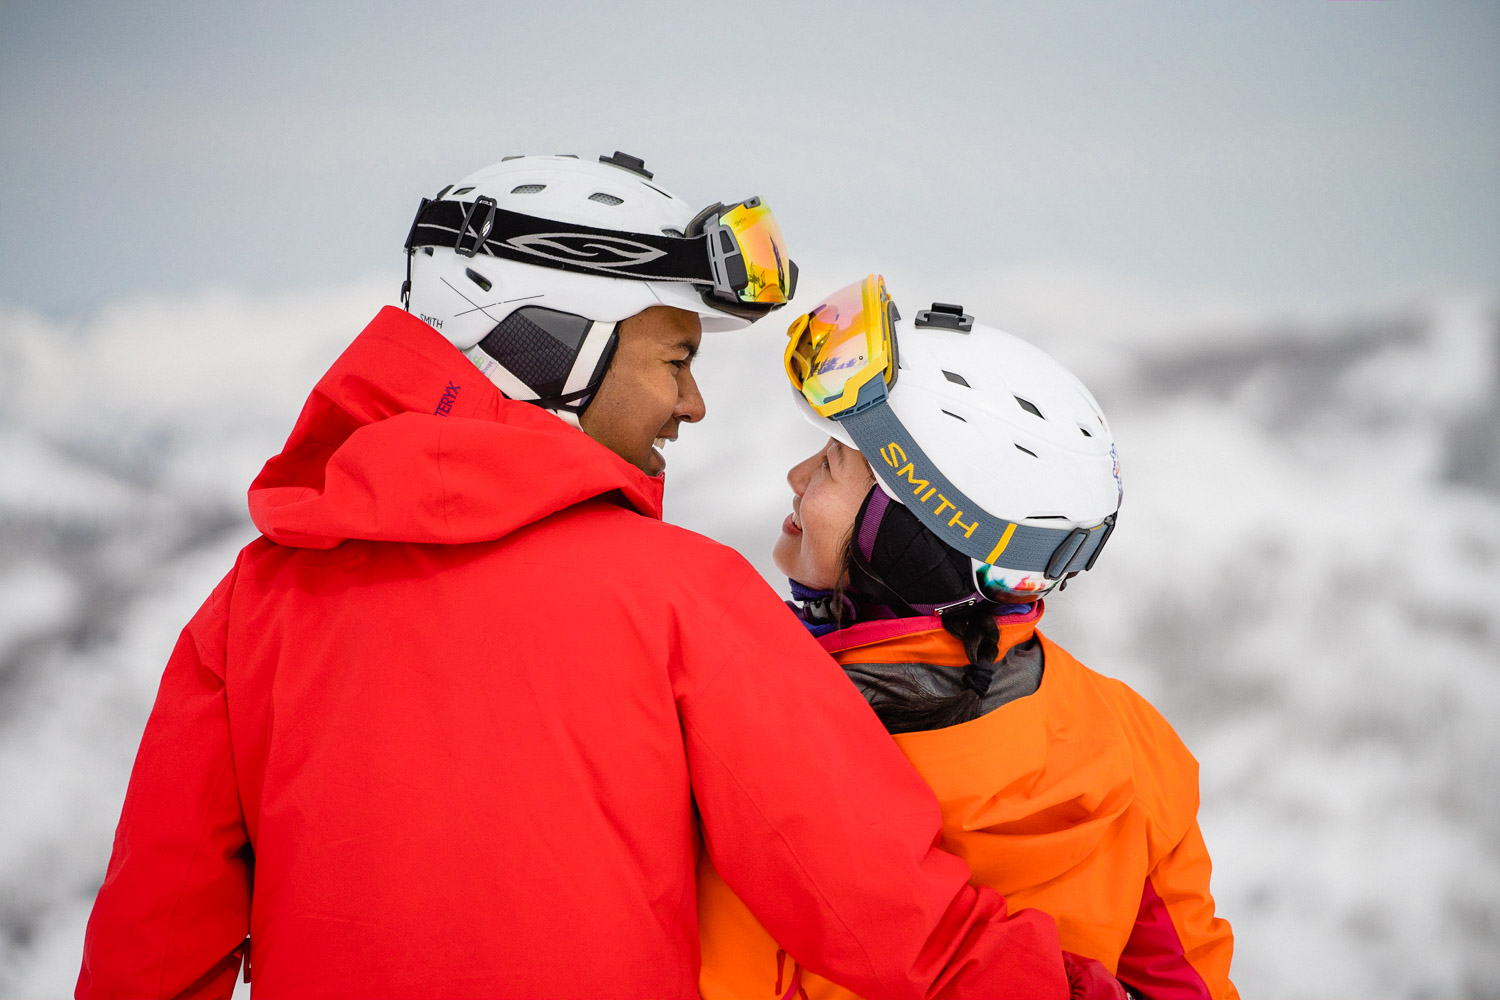 happy couple gazing at each other on snowy mountain utah ski resort